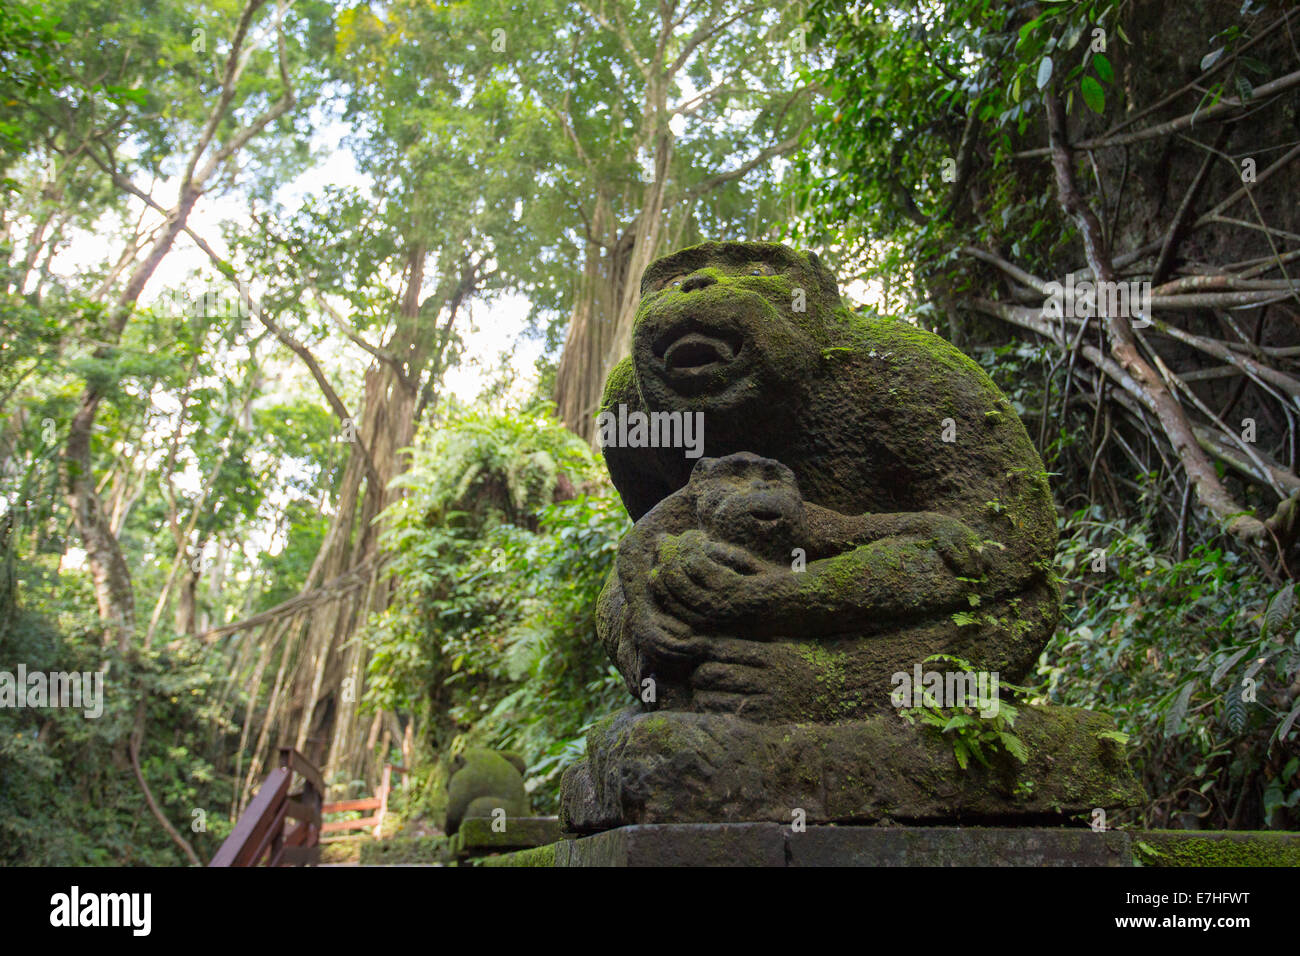 A sculpture in Monkey Forest Sanctuary in Ubud, Bali,Indonesia - Stock Image